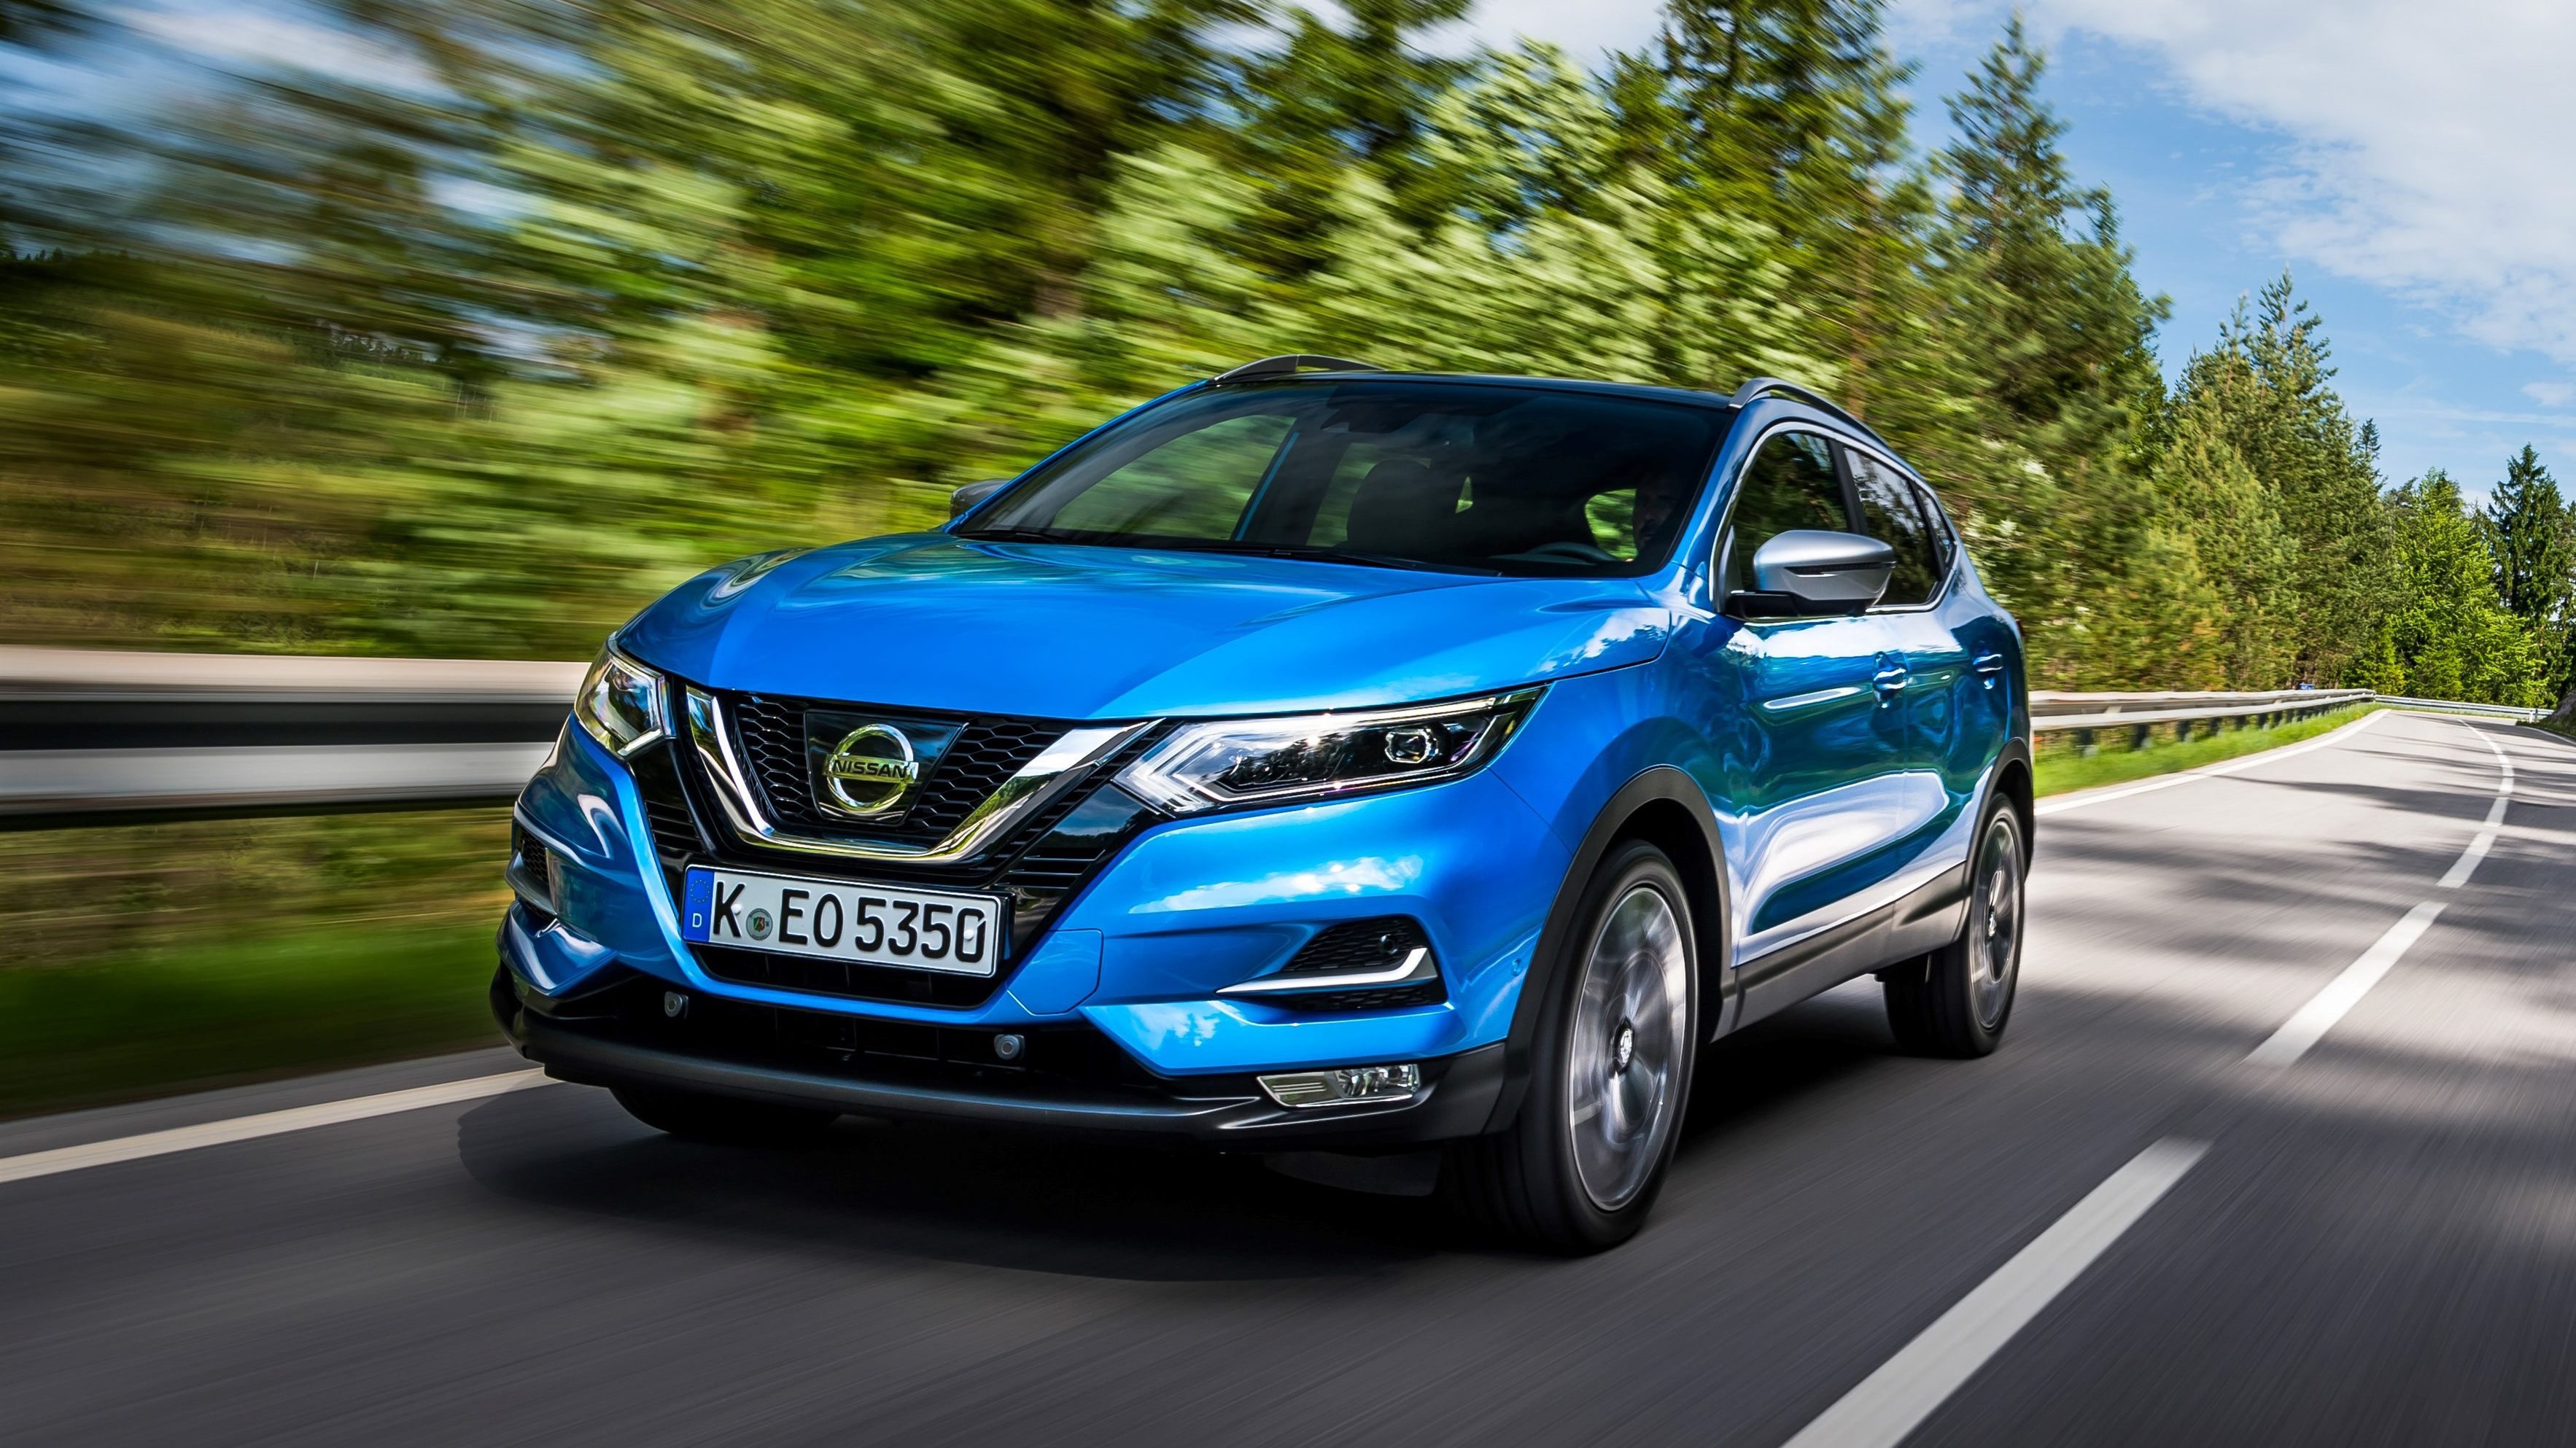 nissan qashqai review and buying guide best deals and prices buyacar. Black Bedroom Furniture Sets. Home Design Ideas